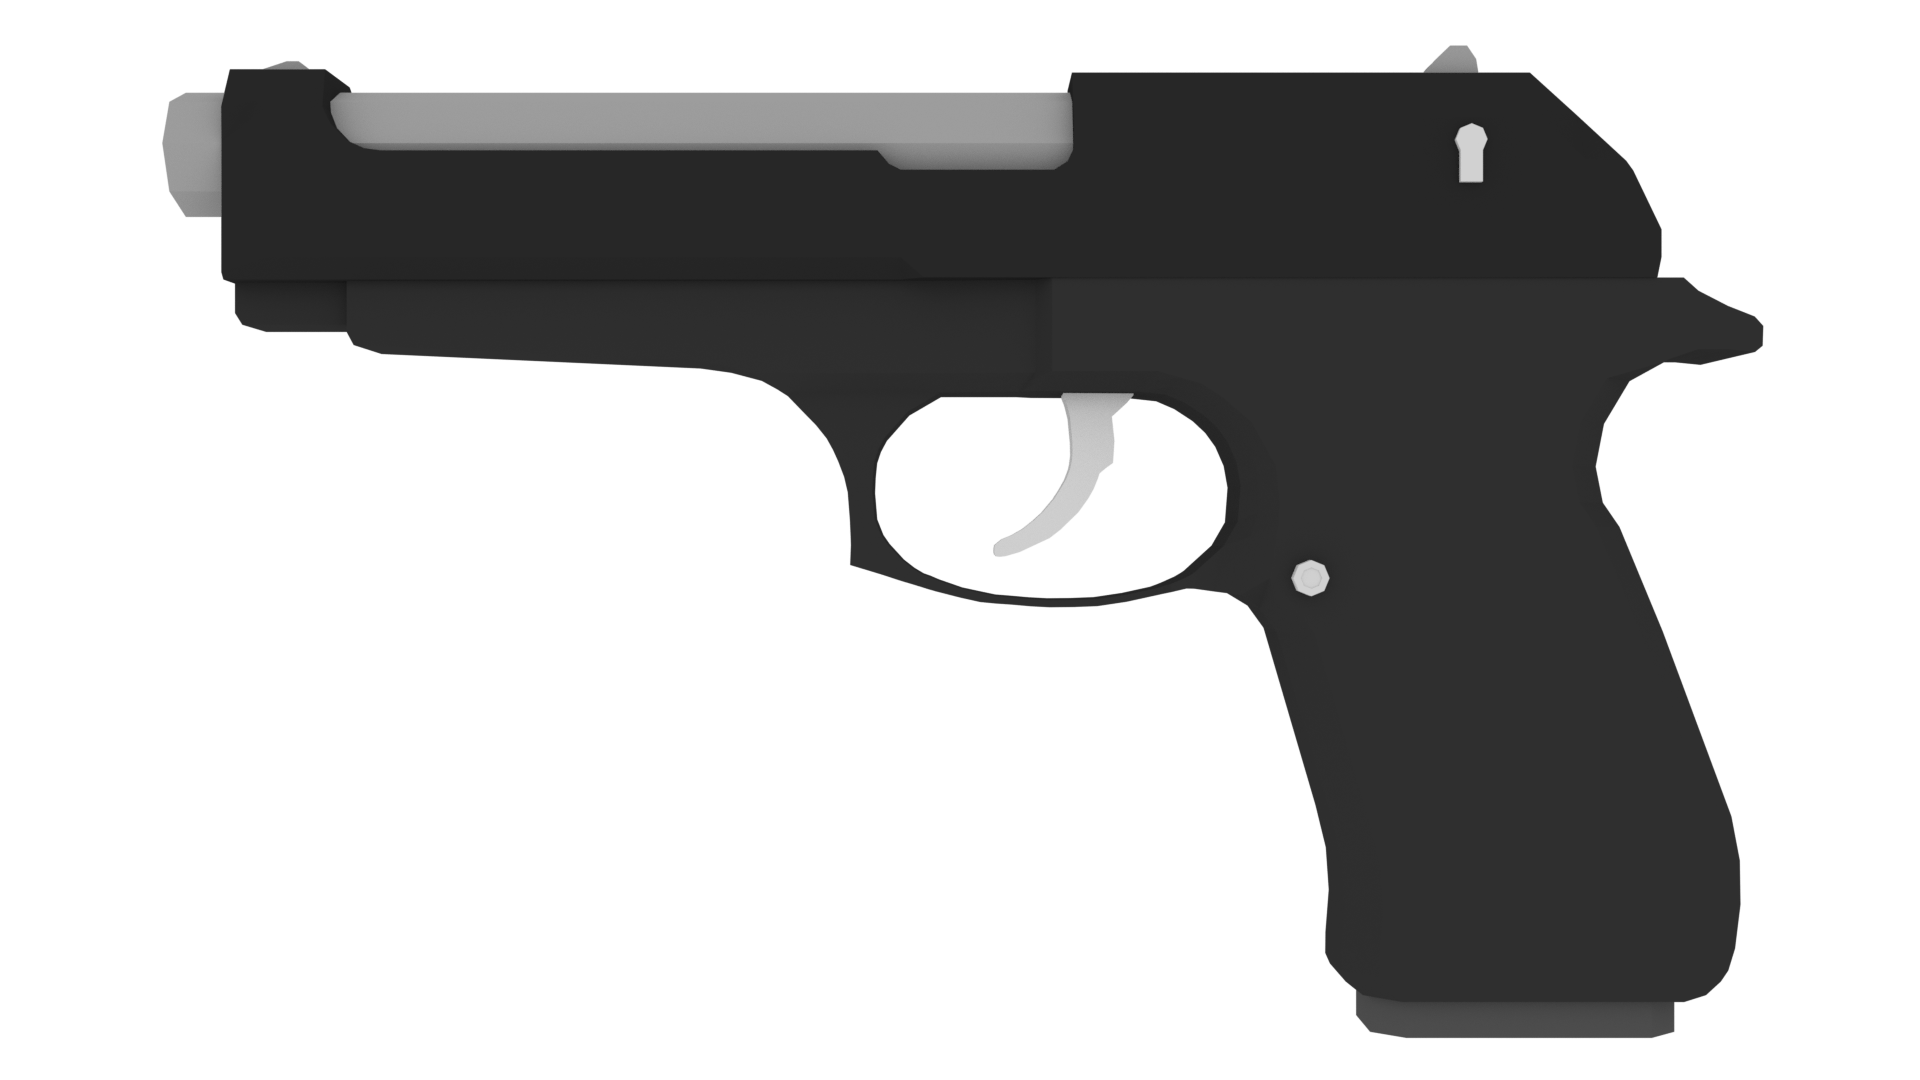 Guns clipart fps. Low poly arms pack